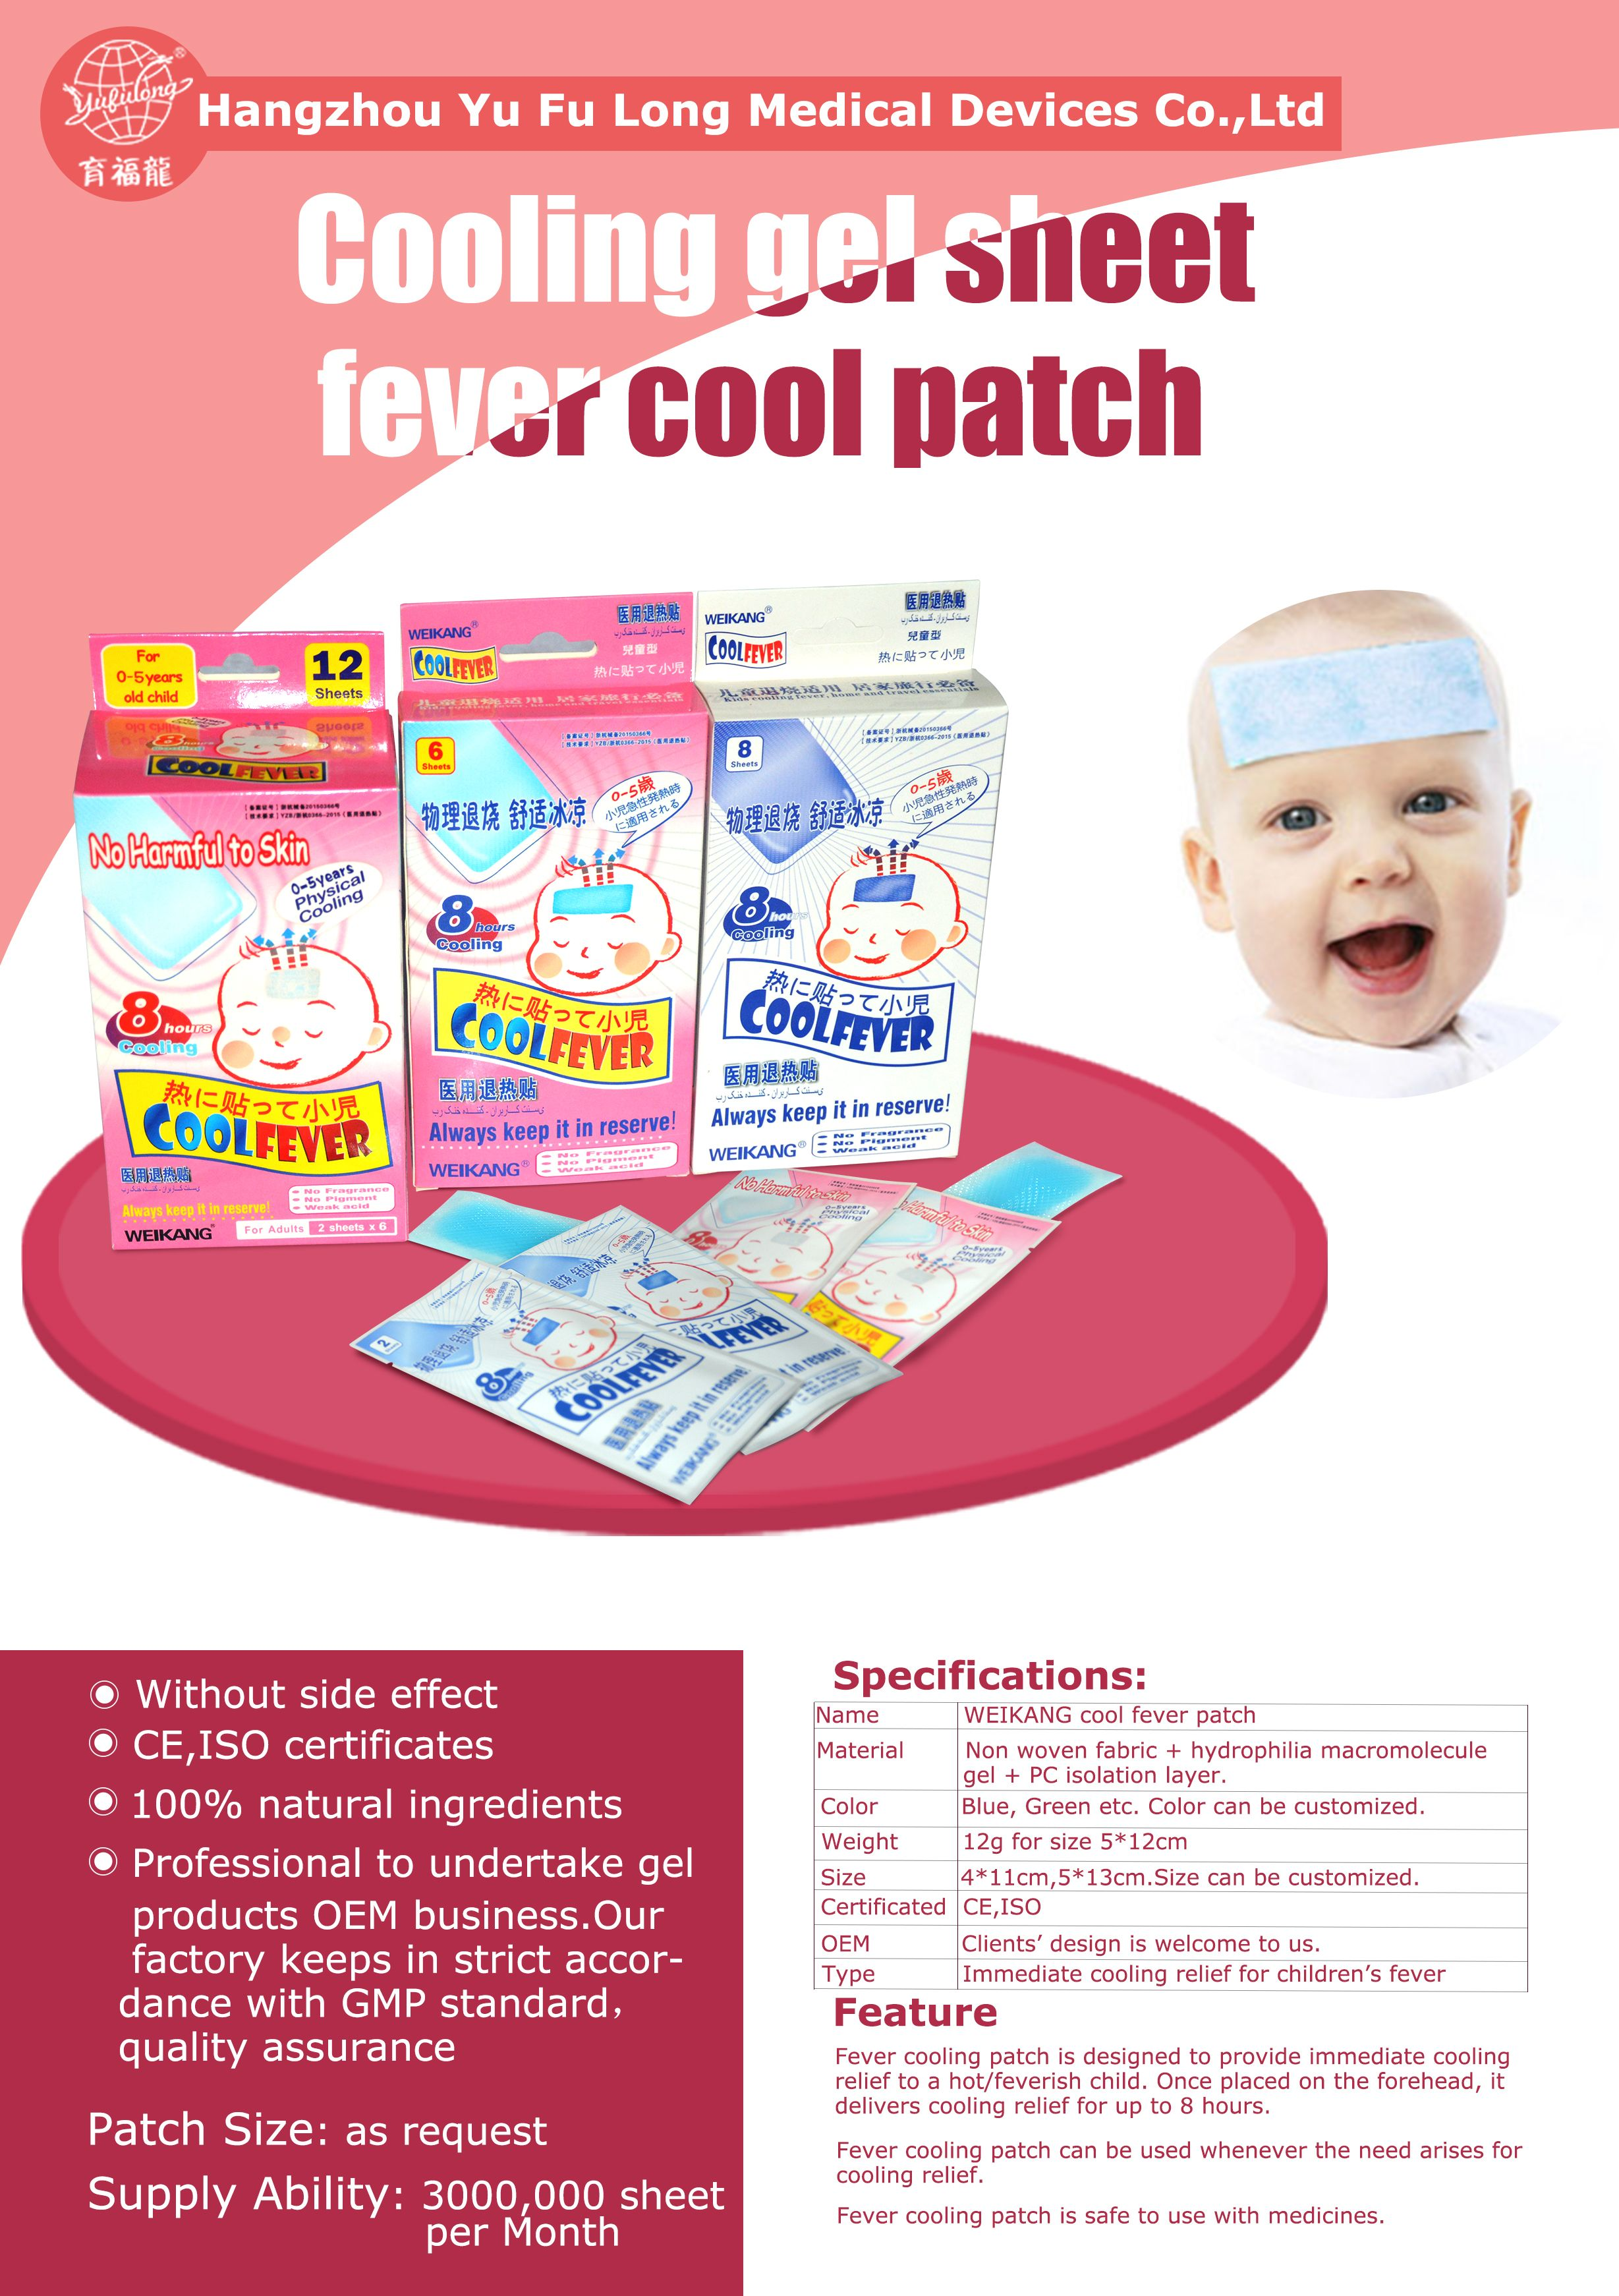 Pin on fever cool patch